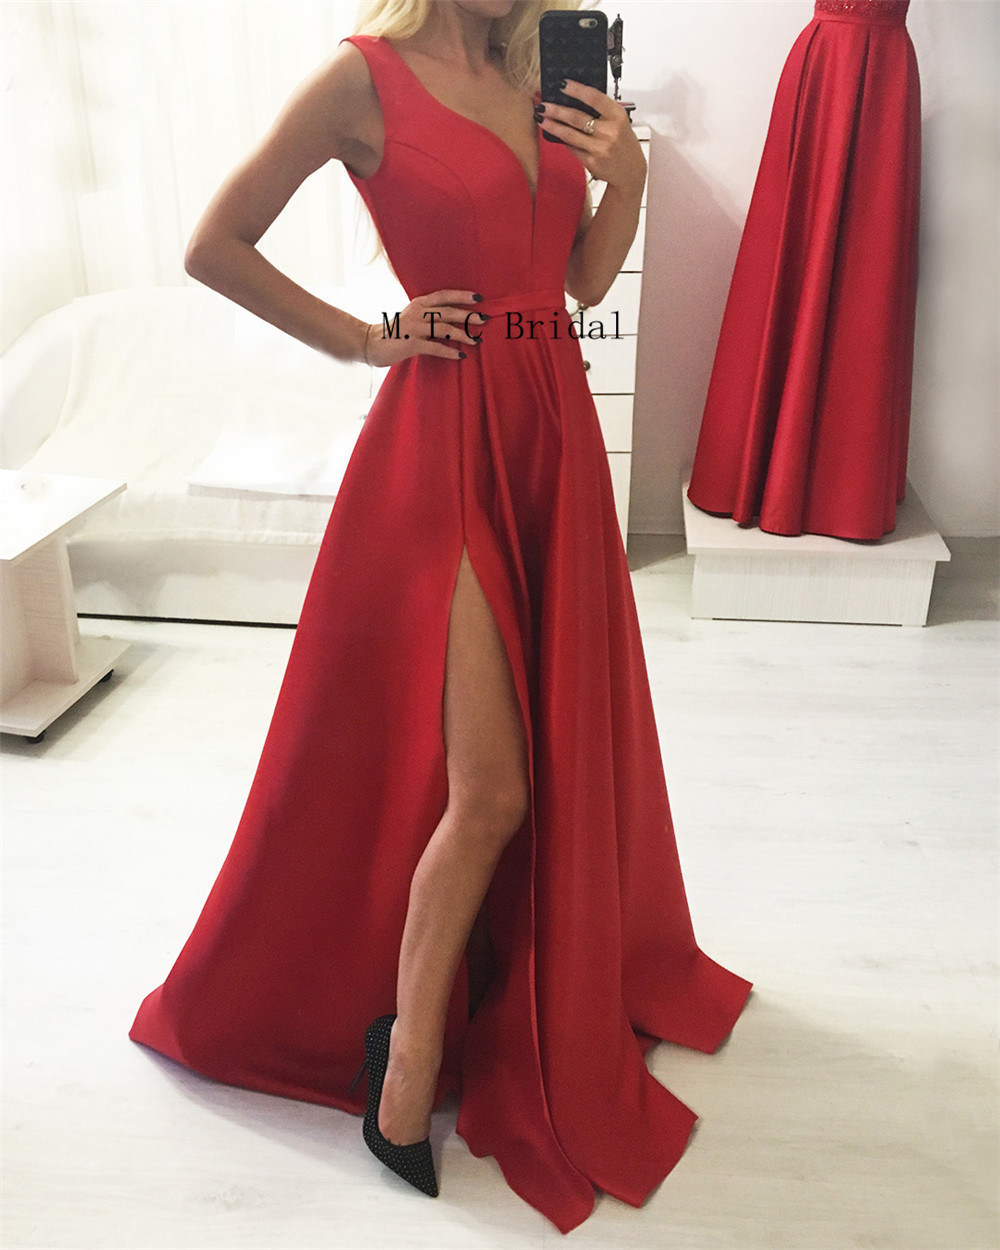 Red Long Prom Dresses 2019 New V Neck Side Split Satin Simple Evening Gowns Custom Made Women Wedding Party Dress Cheap